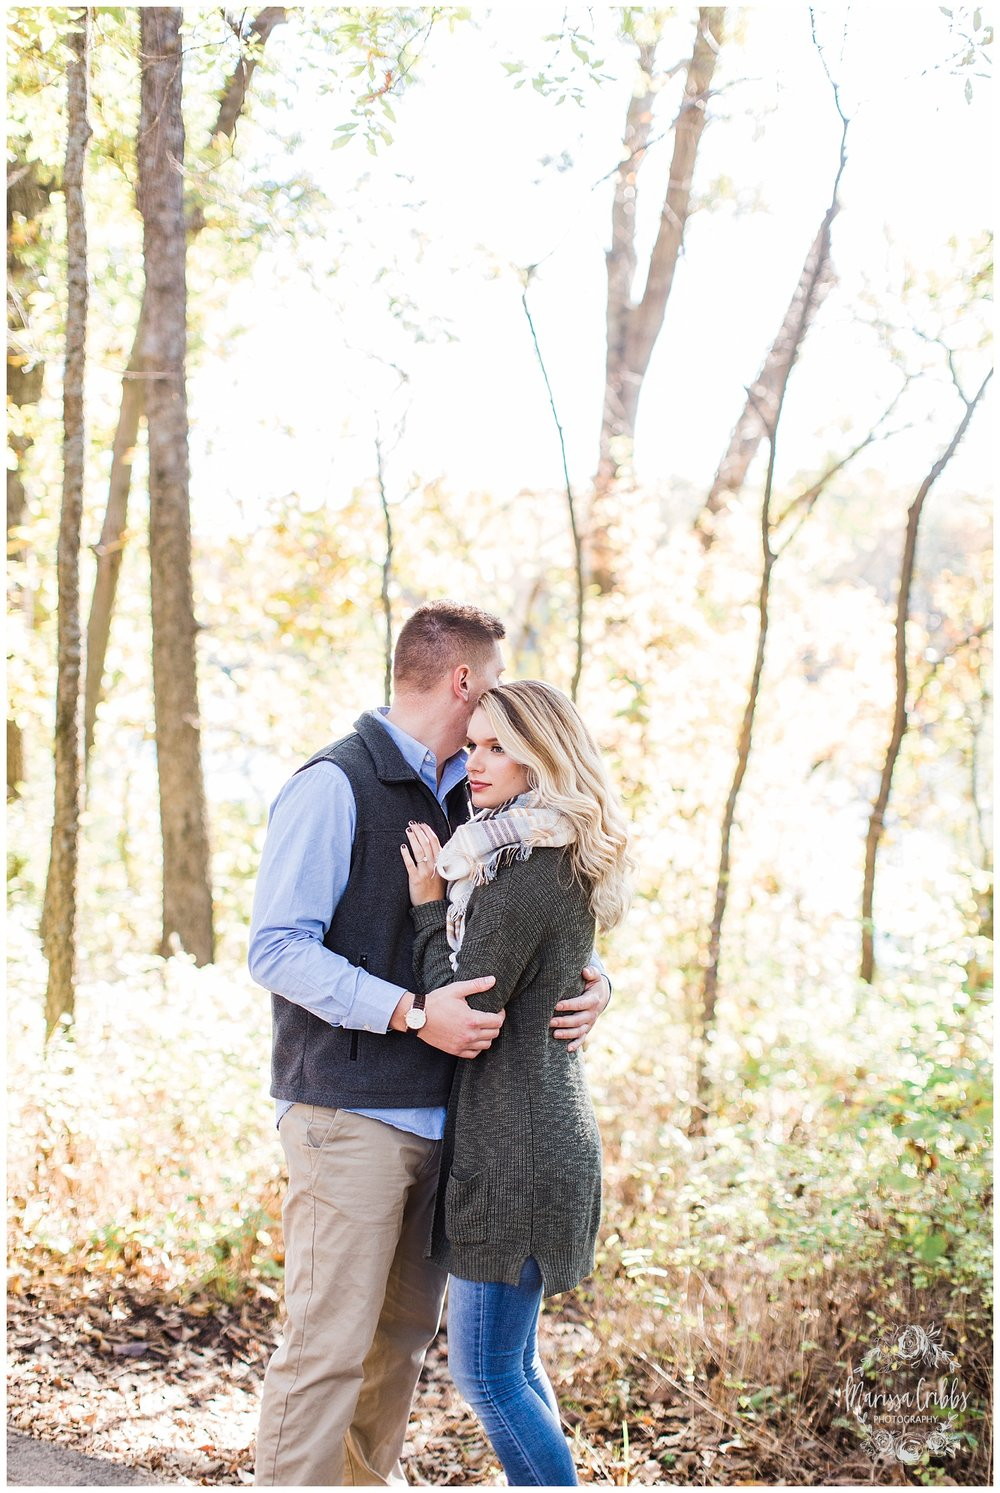 MORGAN HUGHES & RYAN ENGAGEMENT | KC ENGAGEMENT PHOTOS | MARISSA CRIBBS PHOTOGRAPHY_3379.jpg